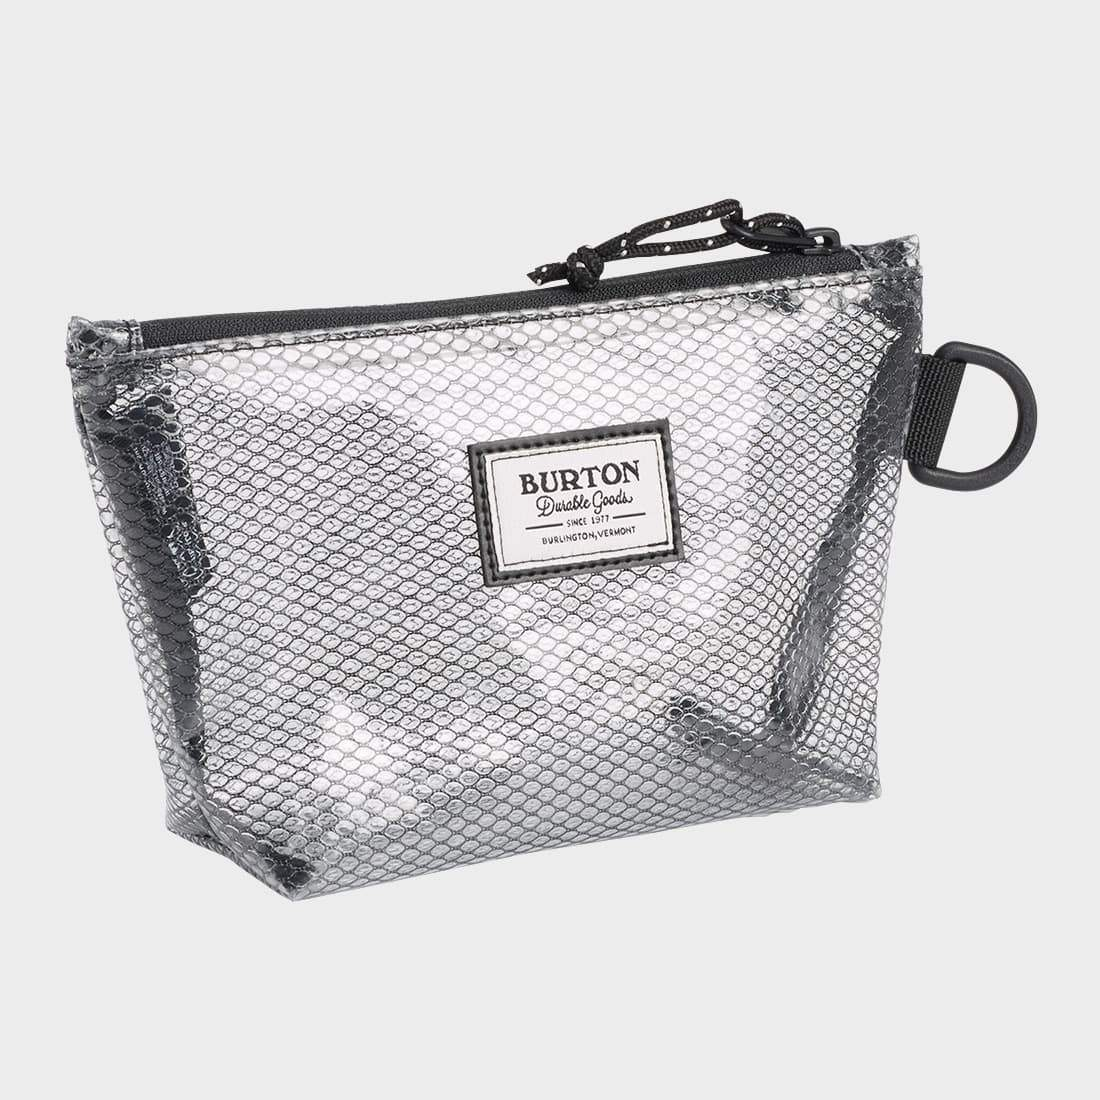 Burton Utility Pouch Small Clear